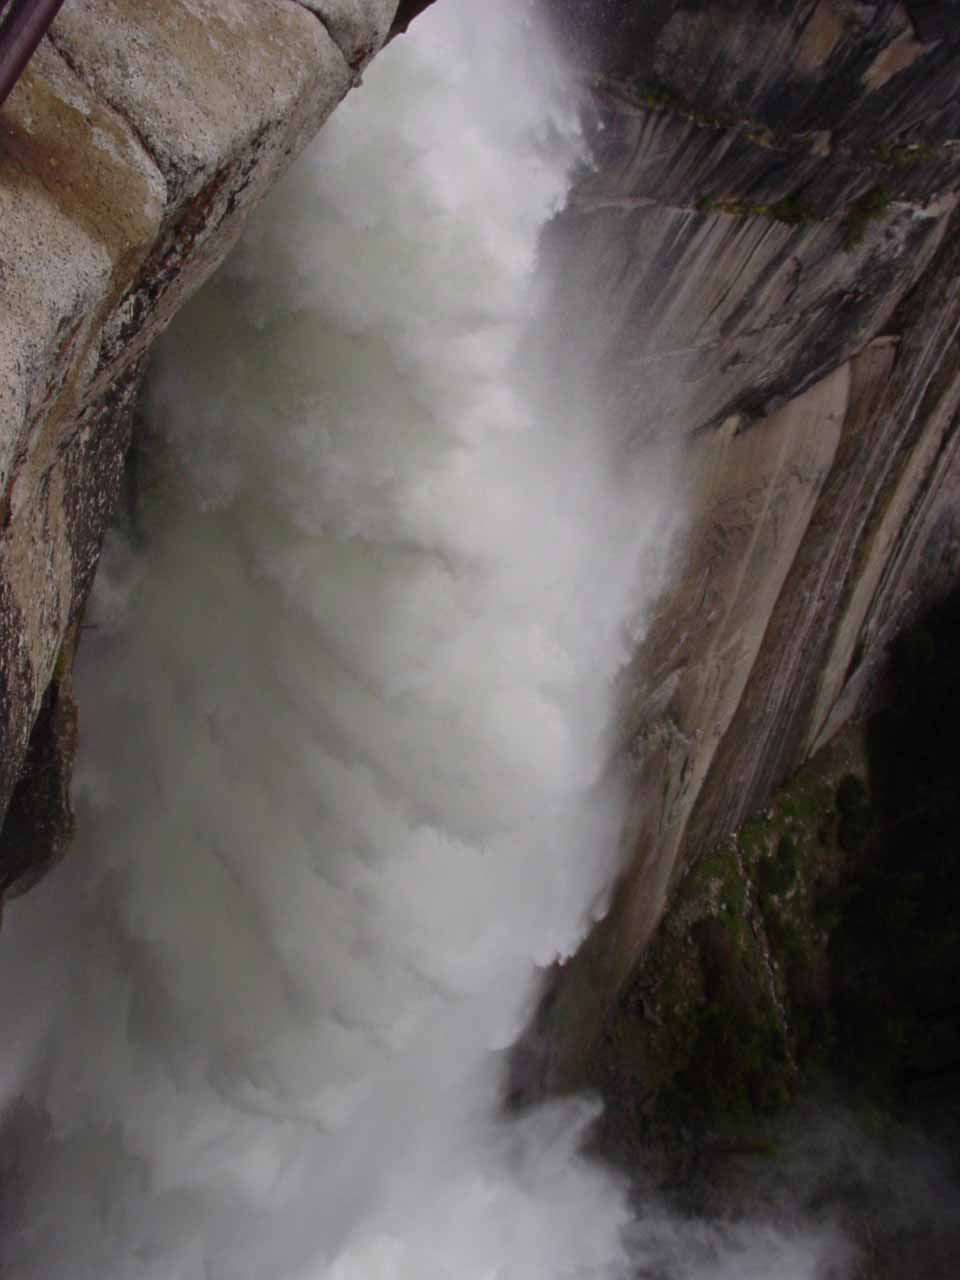 The brink of Nevada Fall